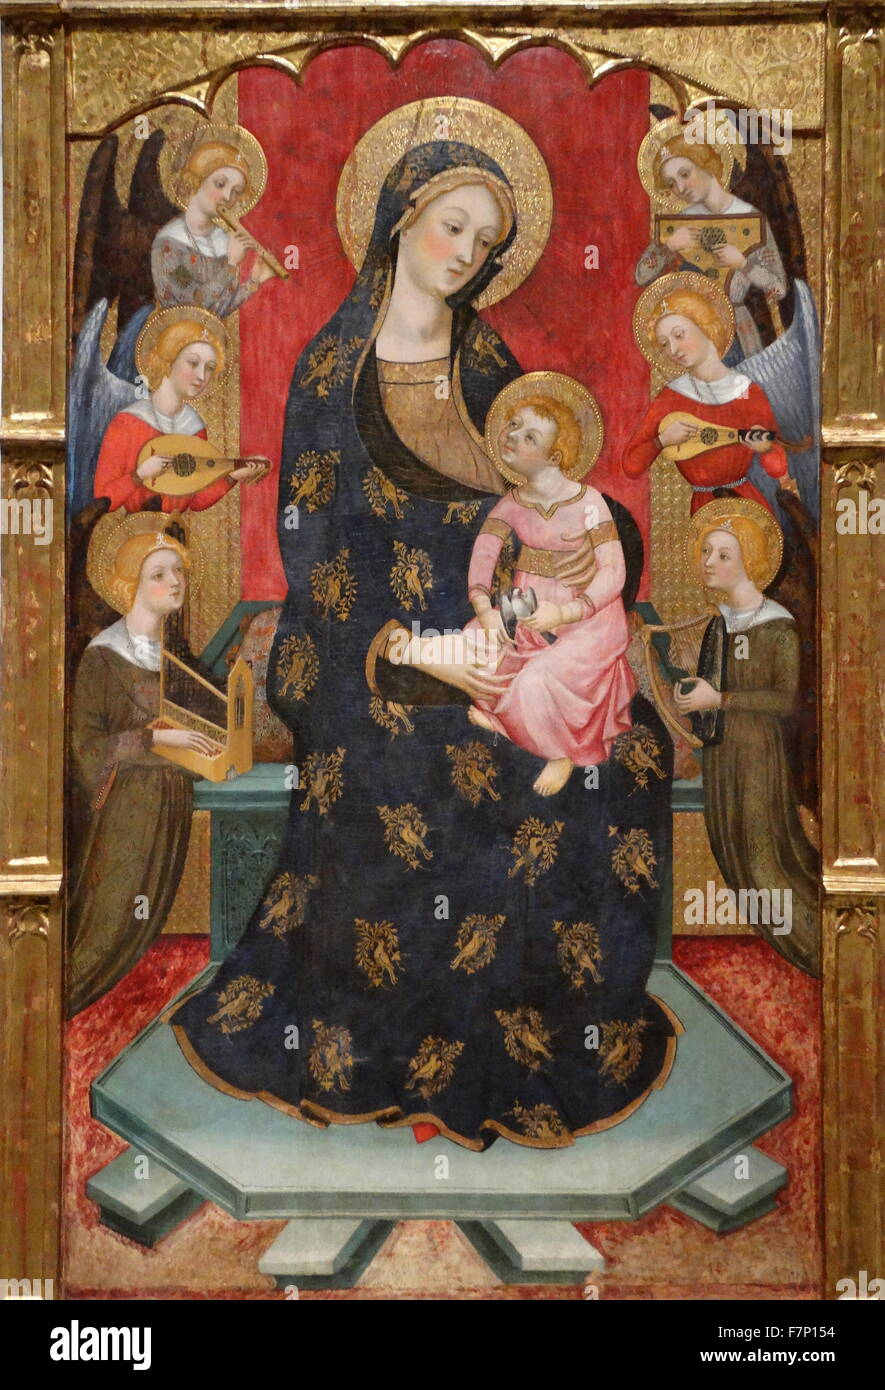 Lady of Angels by Pere Serra (active 1357-1406) Gothic-Italian style painter. Dated 14th Century - Stock Image